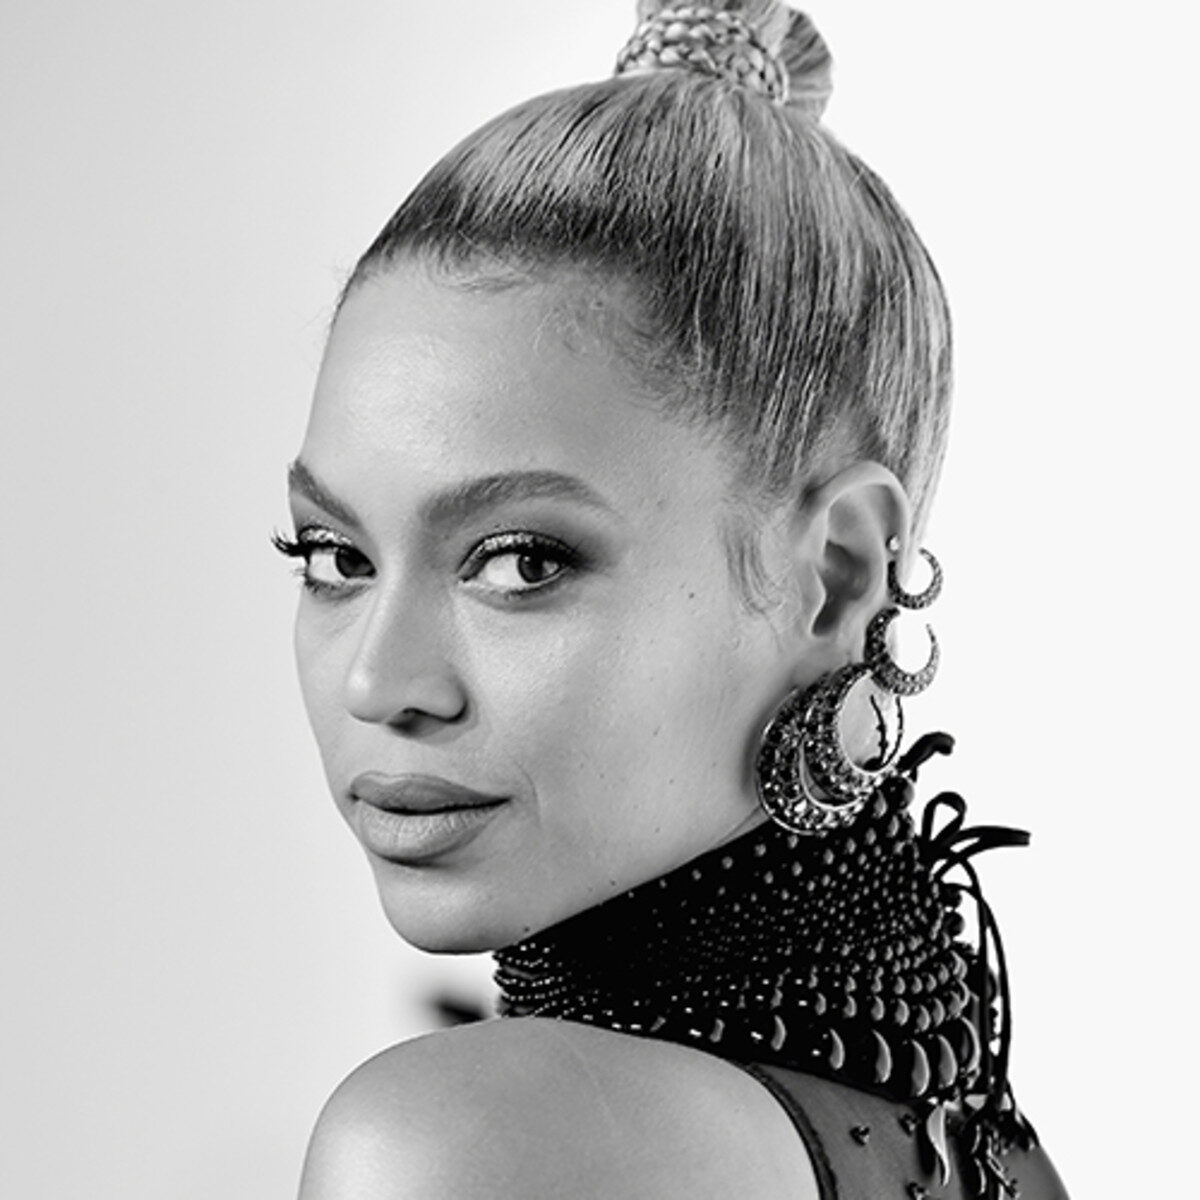 beyonce-attends-tidal-x-1015-on-october-15-2016-in-new-york-city-photo-by-theo-wargogetty-images-for-tidal-sqaure